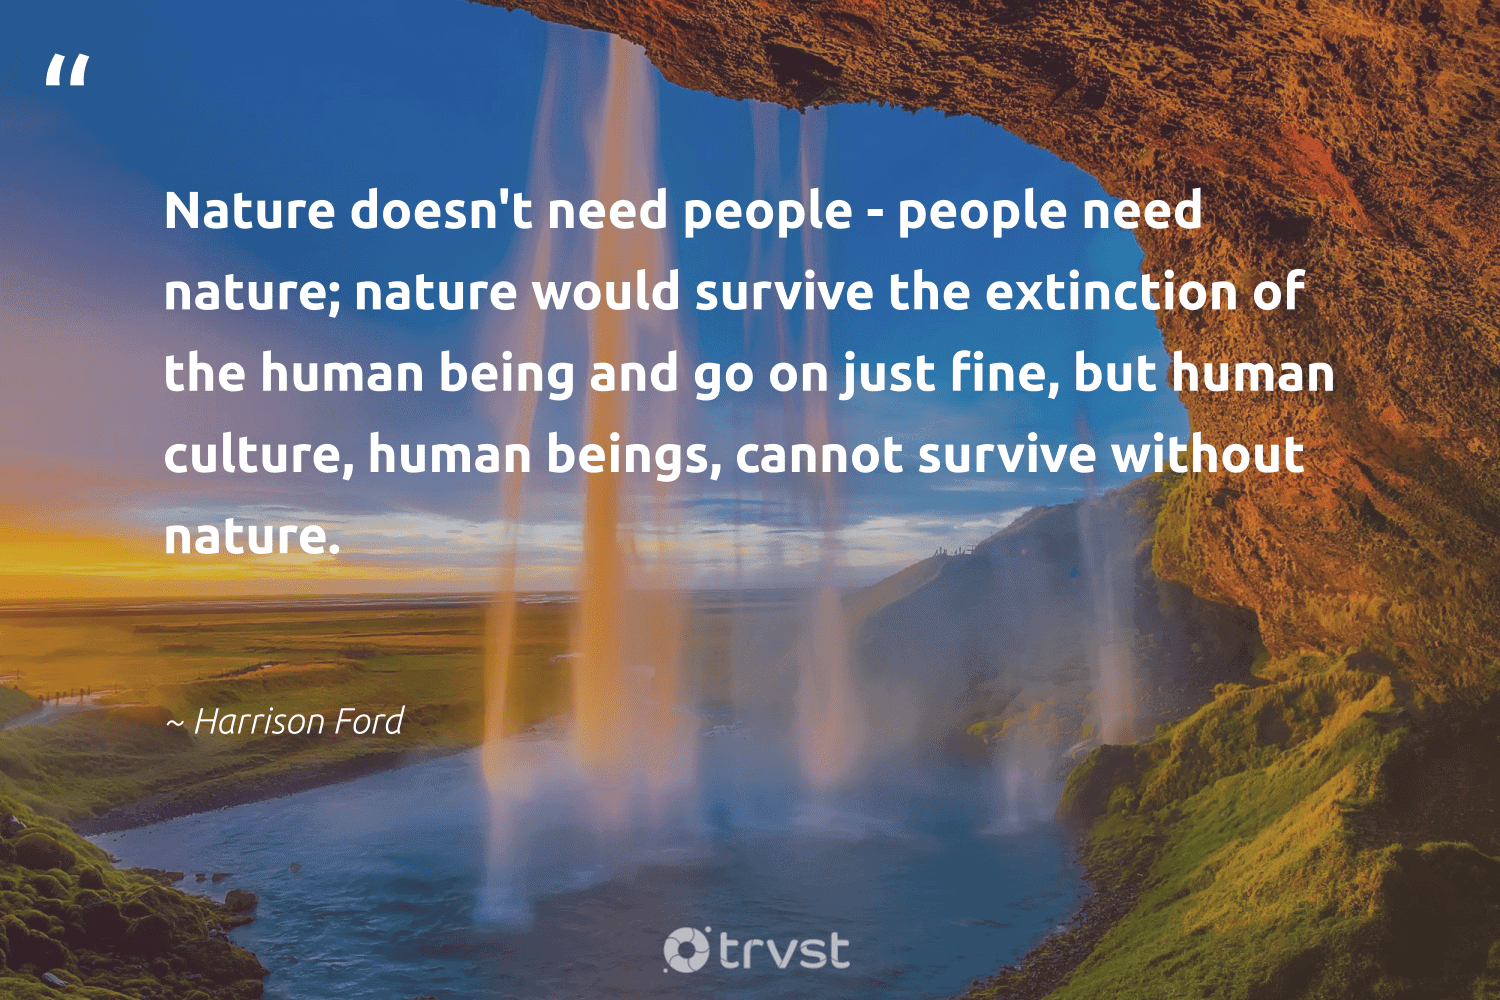 """""""Nature doesn't need people - people need nature; nature would survive the extinction of the human being and go on just fine, but human culture, human beings, cannot survive without nature.""""  - Harrison Ford #trvst #quotes #environment #nature #extinction #volunteer #wildlifeplanet #impact #mothernature #savetheplanet #sustainability #bethechange"""